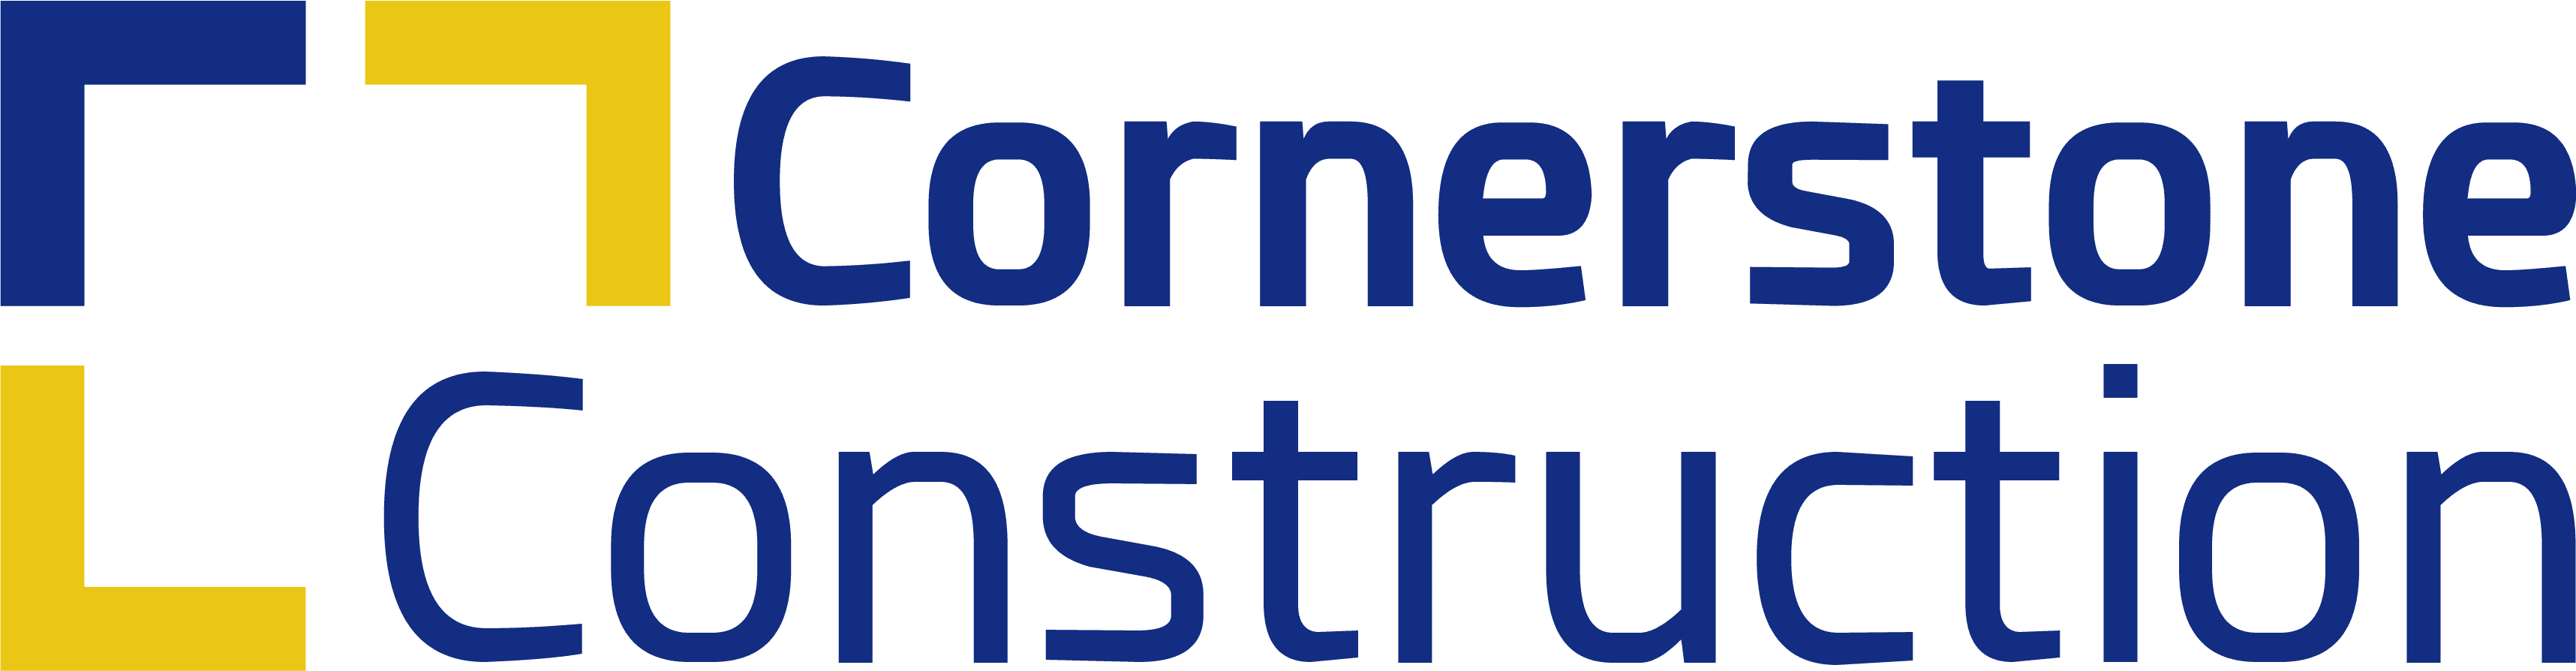 Cornerstone Construction Is A Sophisticated Roofing Business Company In Greenville Sc That Aims To Supply Roofing Services Commercial Roofing Roofing Business